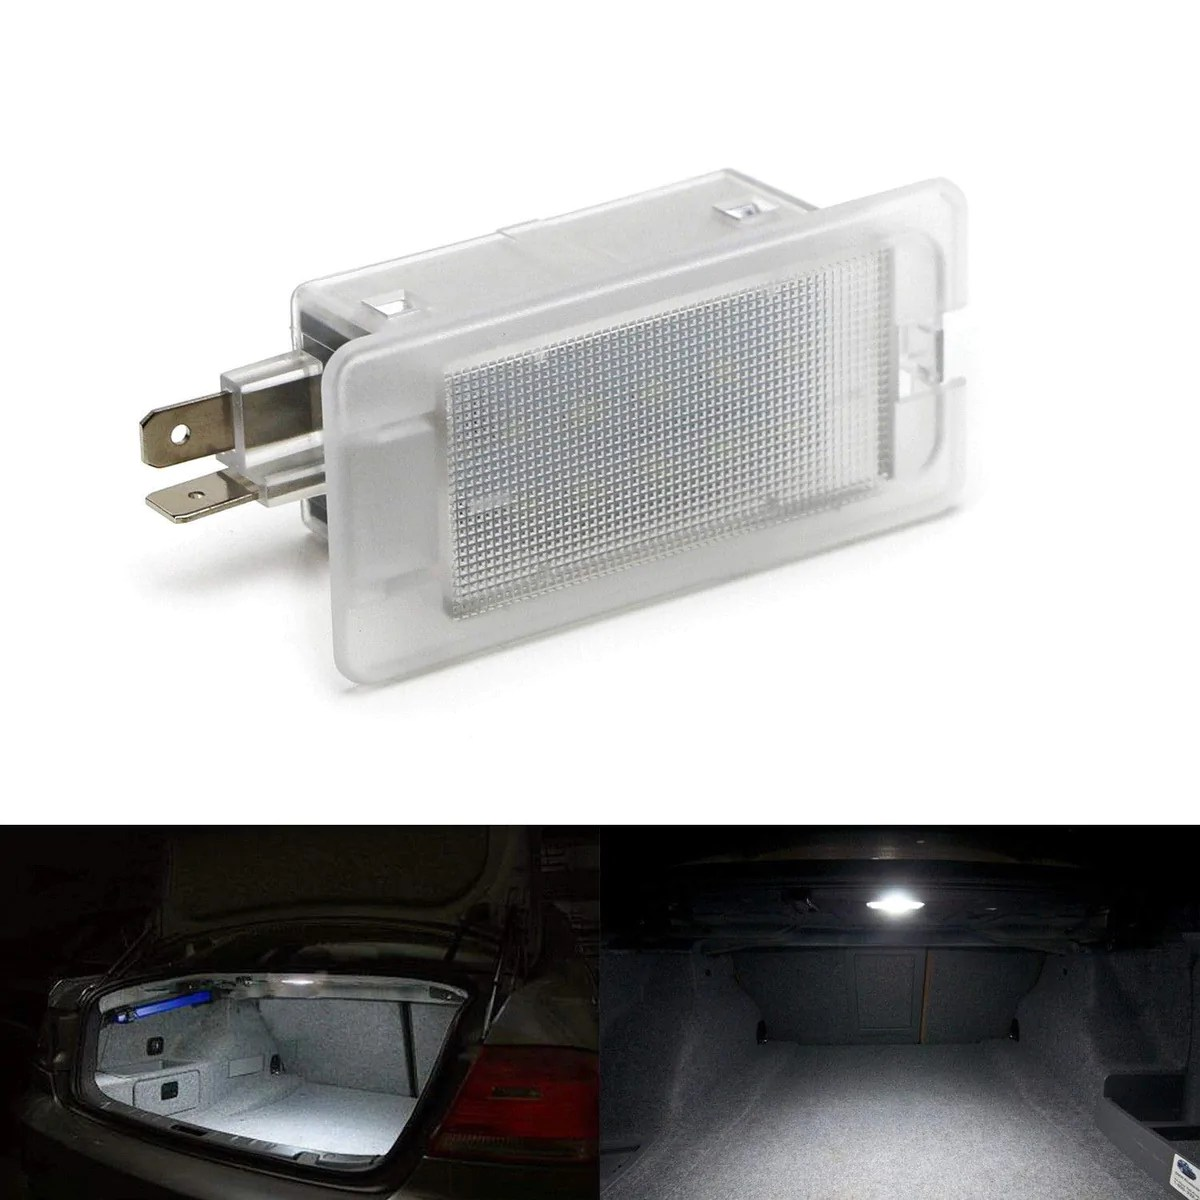 hight resolution of xenon white led trunk glove box light for hyundai accent elantra genesis coupe sonata kia optima forte rio k900 etc great as oem replacement powered by